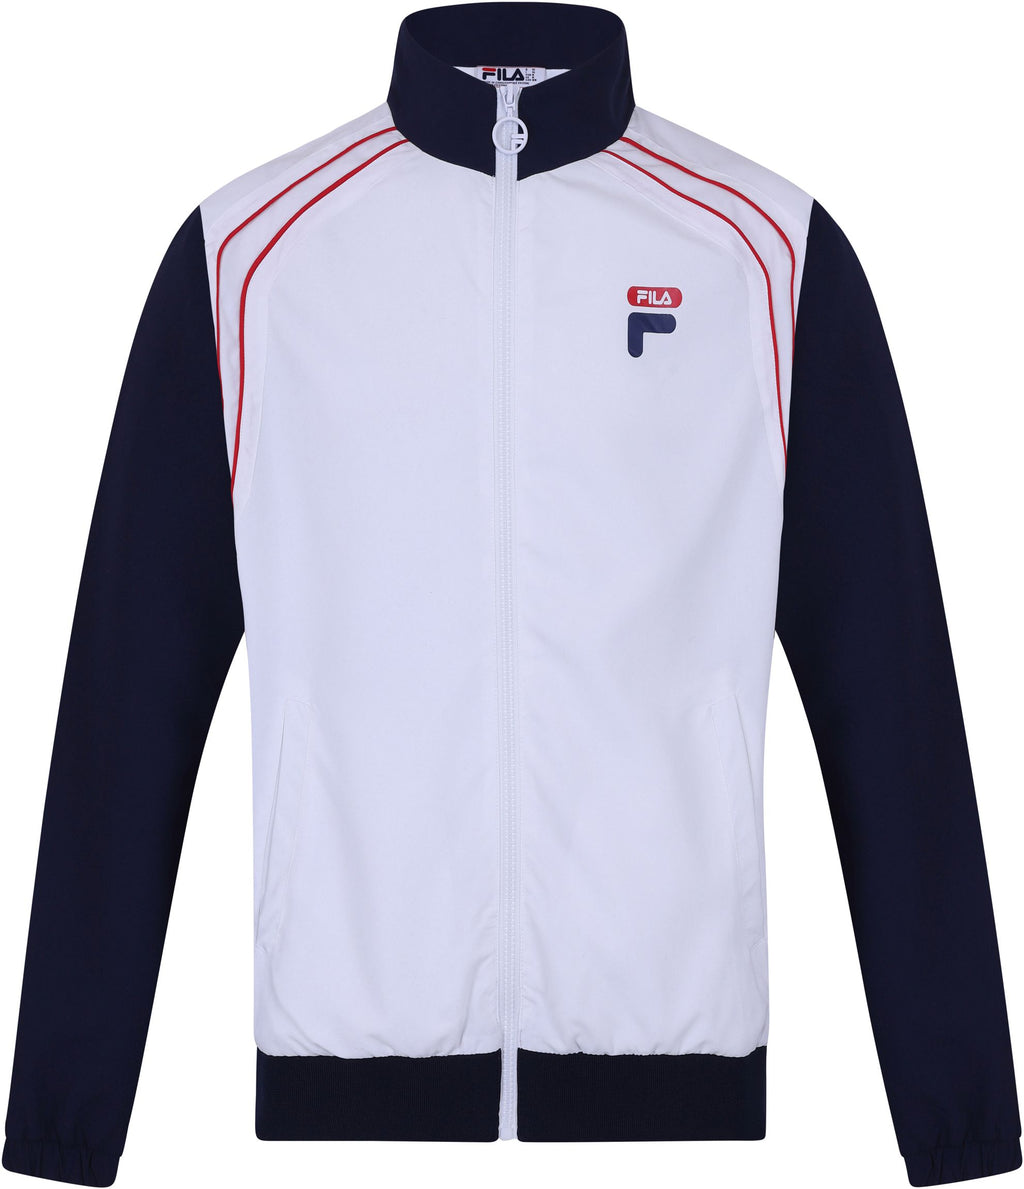 Fila Vaughn Piped Track Jacket White